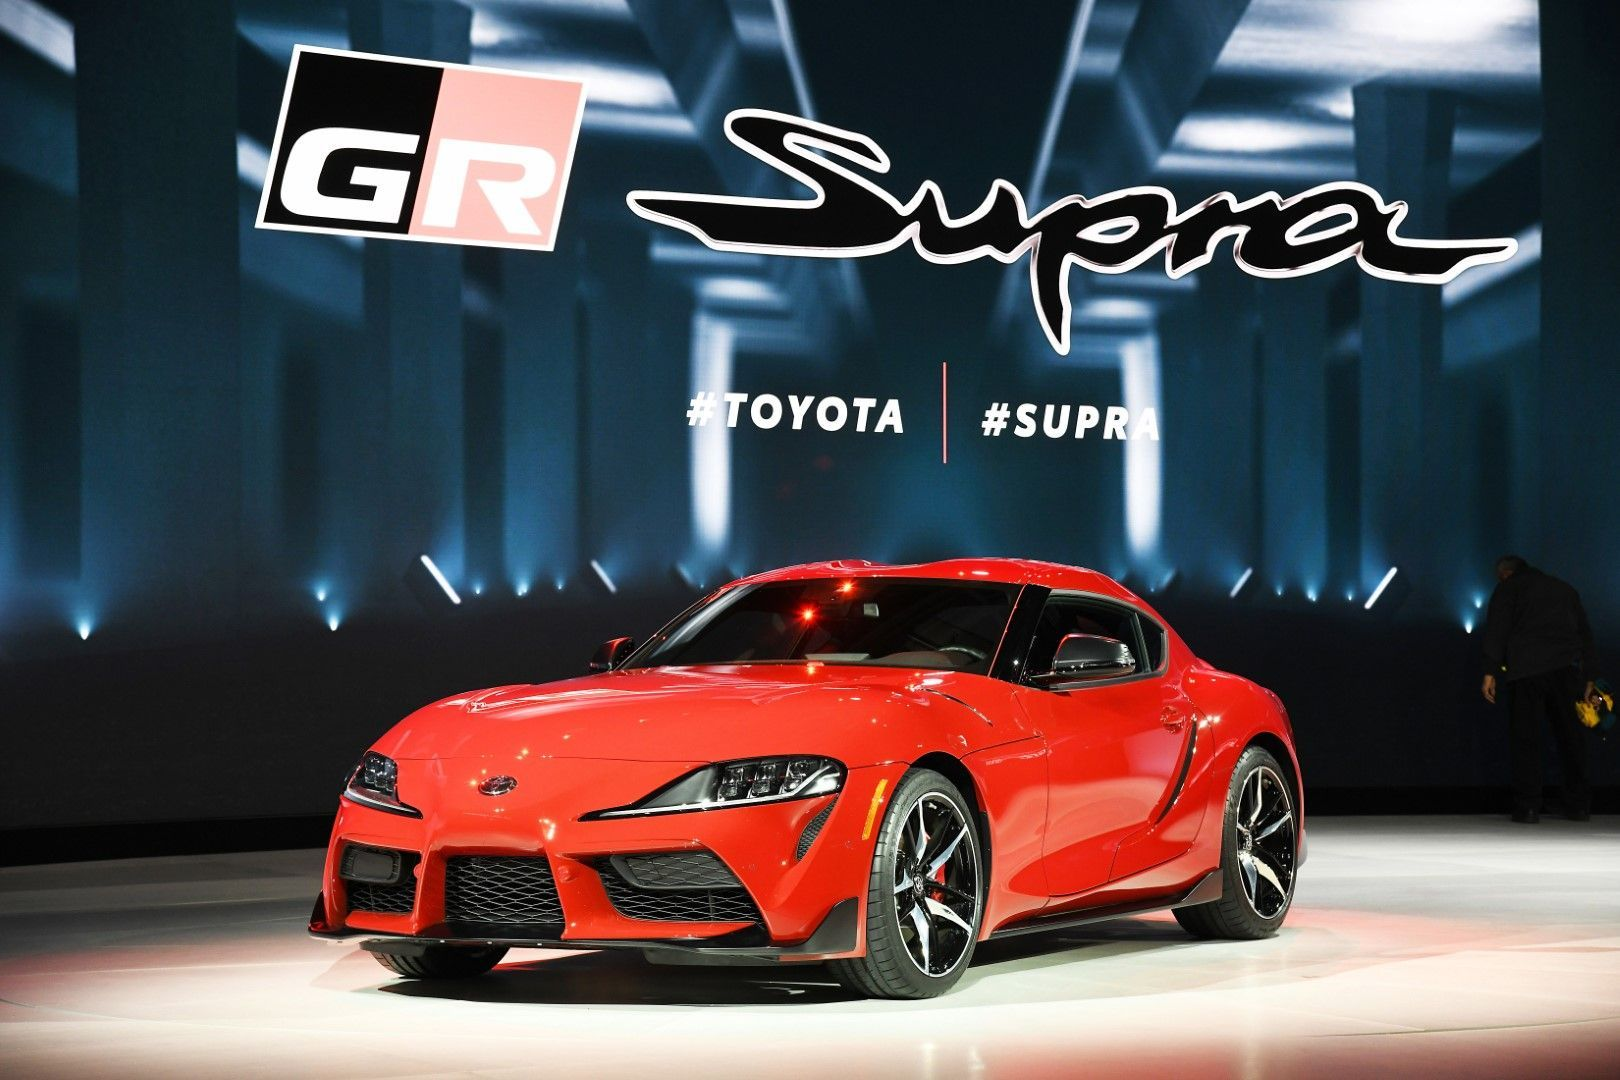 2020 Toyota Supra North American Model 3 0 Liter Turbocharged Inline Six With 335 Hp And 365 Lb Ft Of Torque New Toyota Supra Toyota Supra Toyota